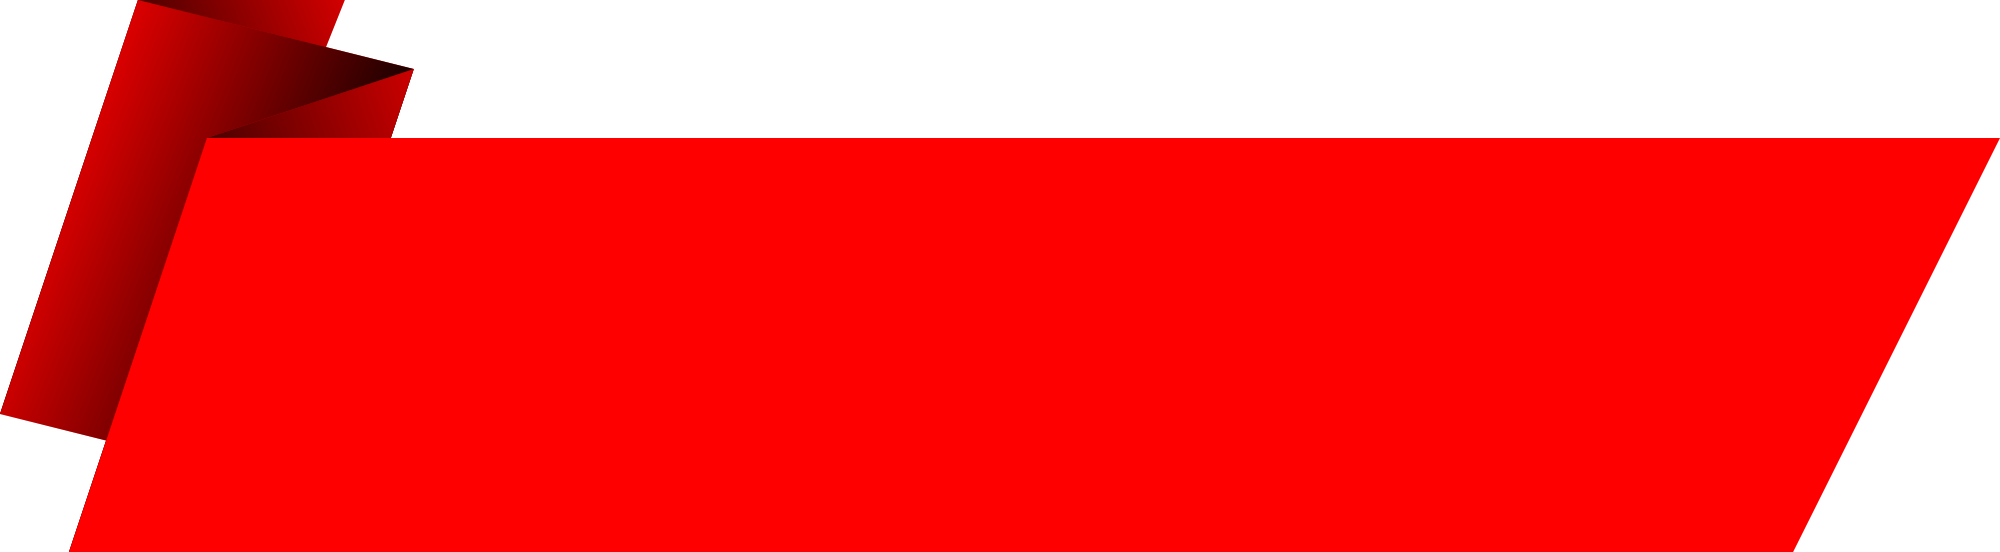 Banners Png (+).